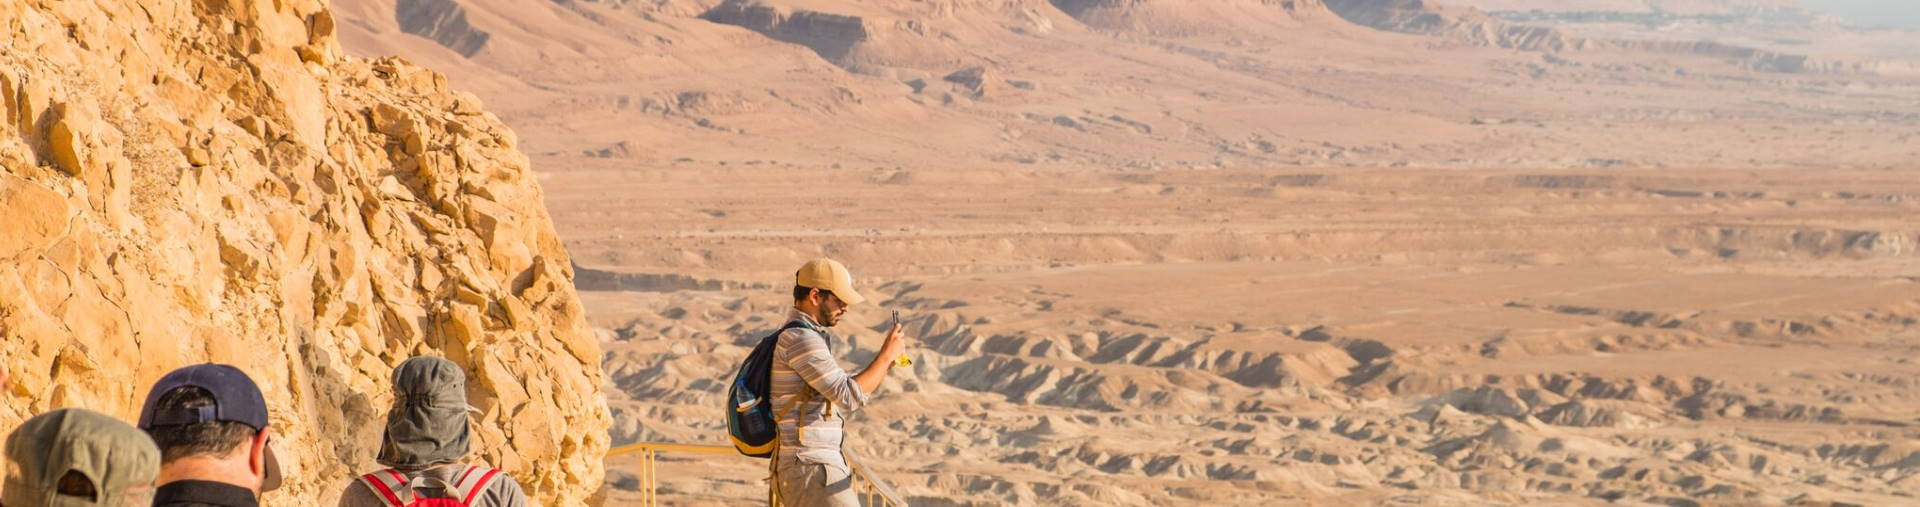 Masada, Ein Gedi & Dead Sea Tour from Tel Aviv